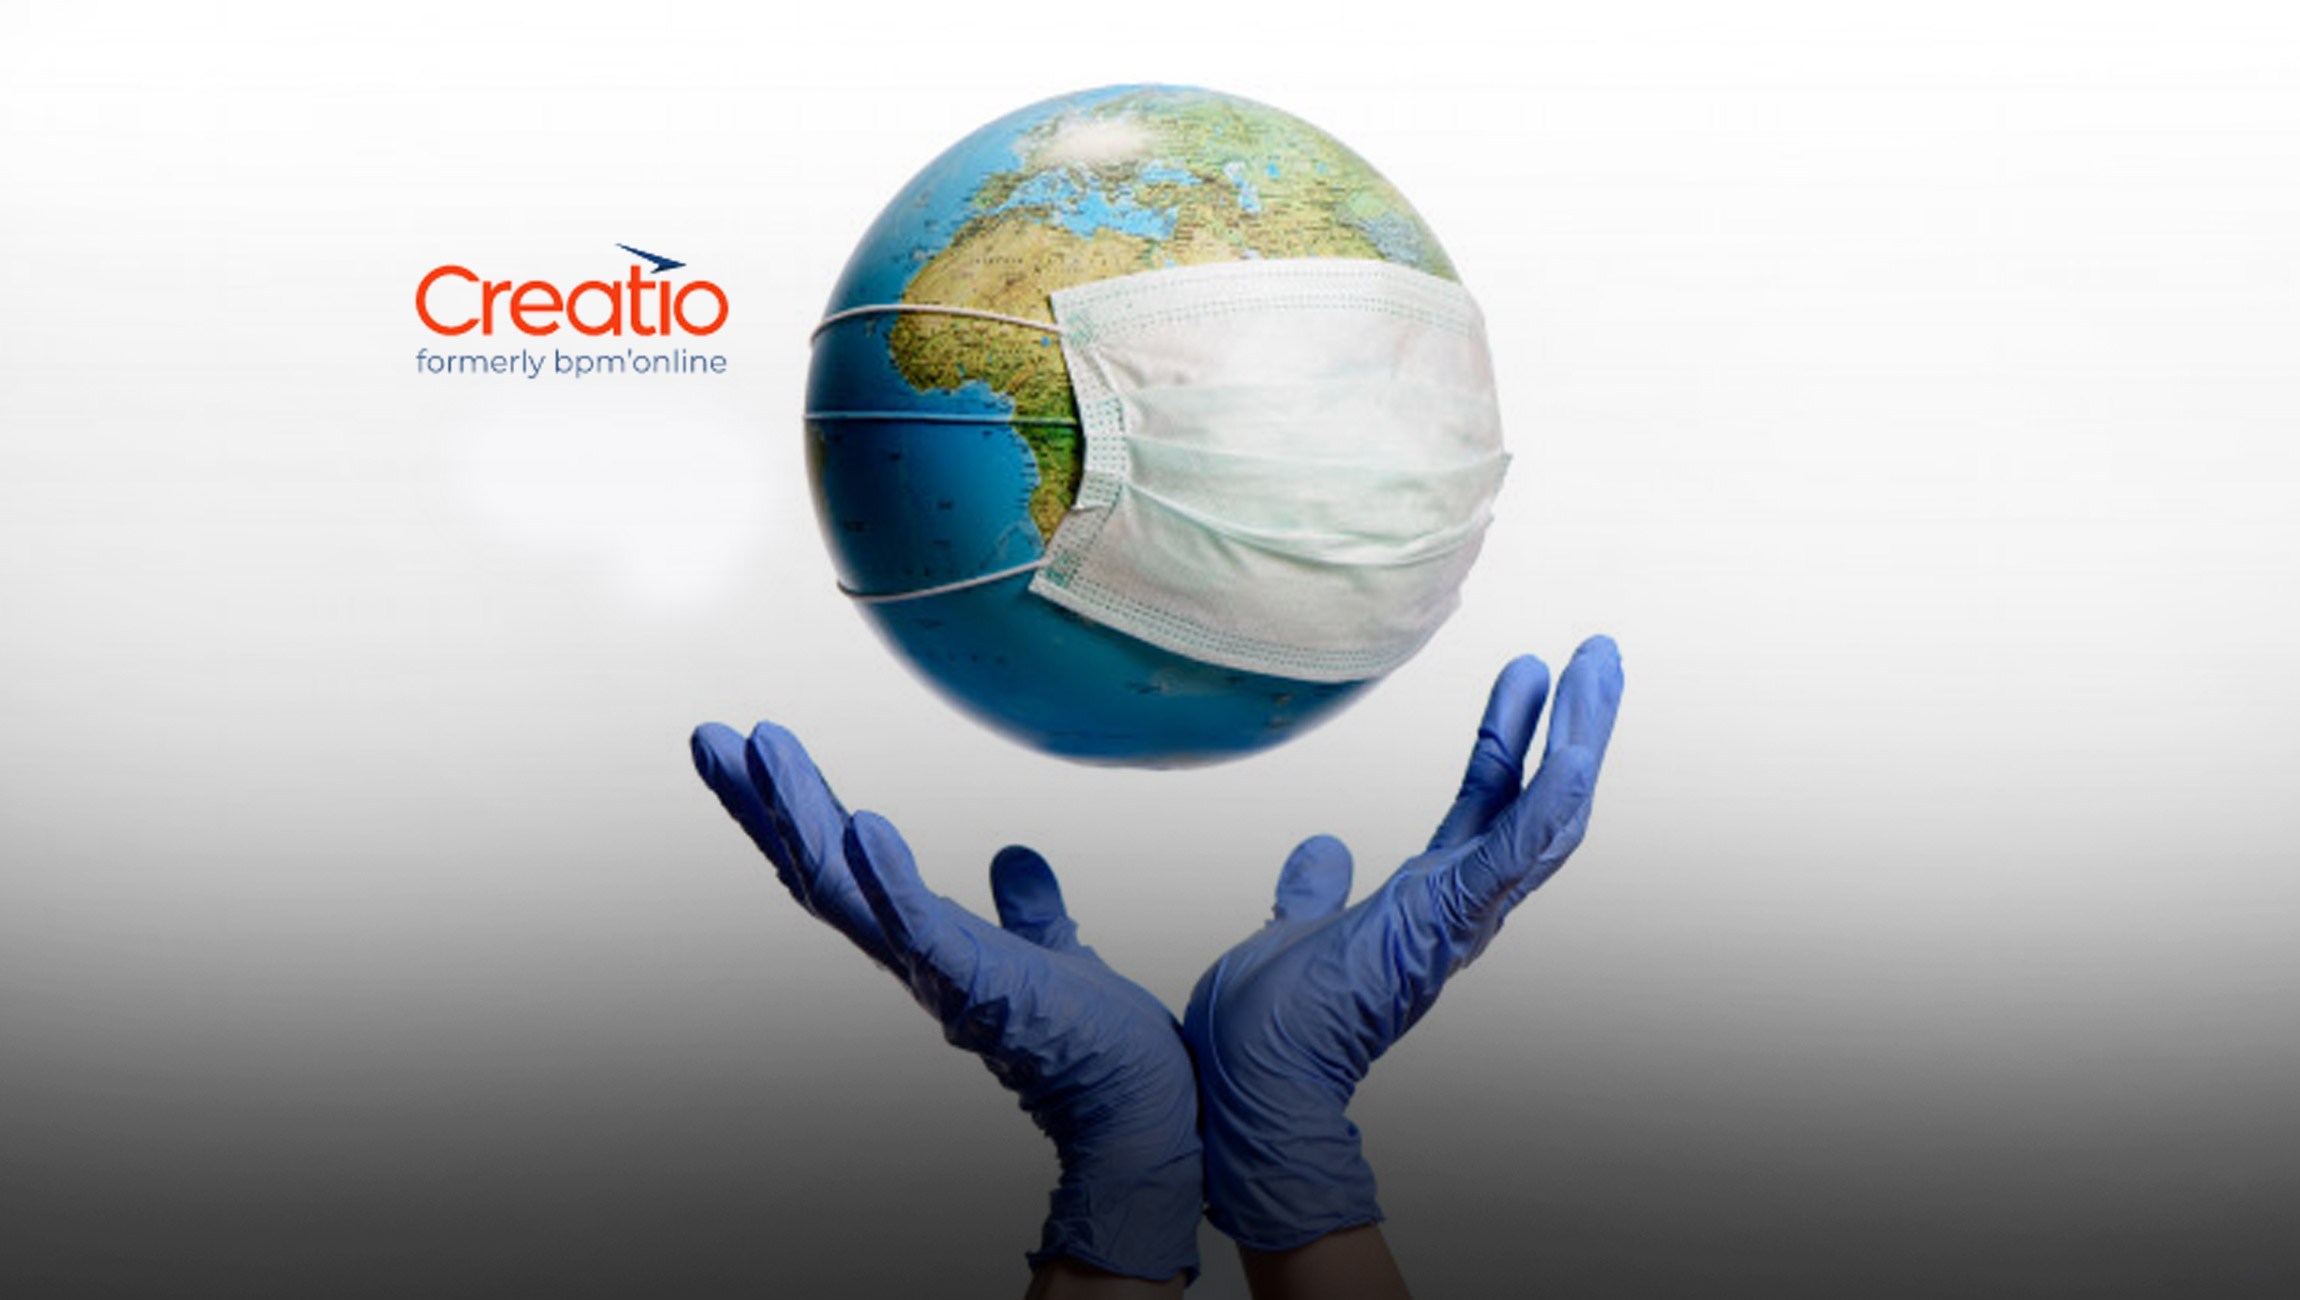 Creatio Offers its Service Creatio for Free to Healthcare, Charitable, Voluntary Organizations and Government Agencies to Stay Productive as the World is Getting Back to Normal from Quarantine